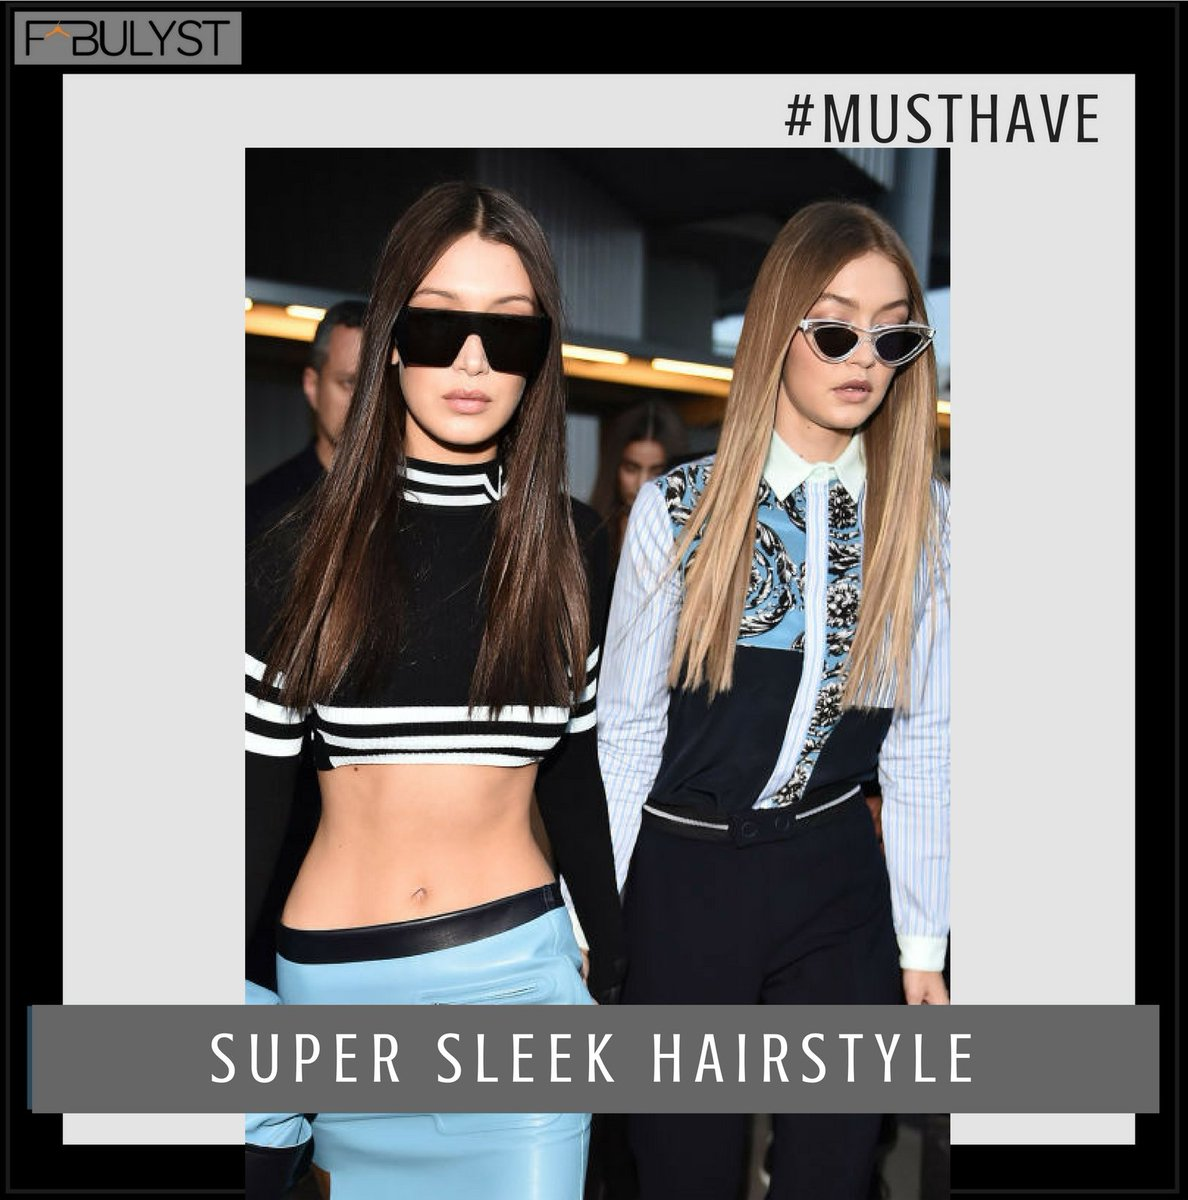 glasses for style only s4lv  But this style only works if your hair looks #healthy @GiGiHadid  @bellahadidpictwittercom/CnnOSsUzka